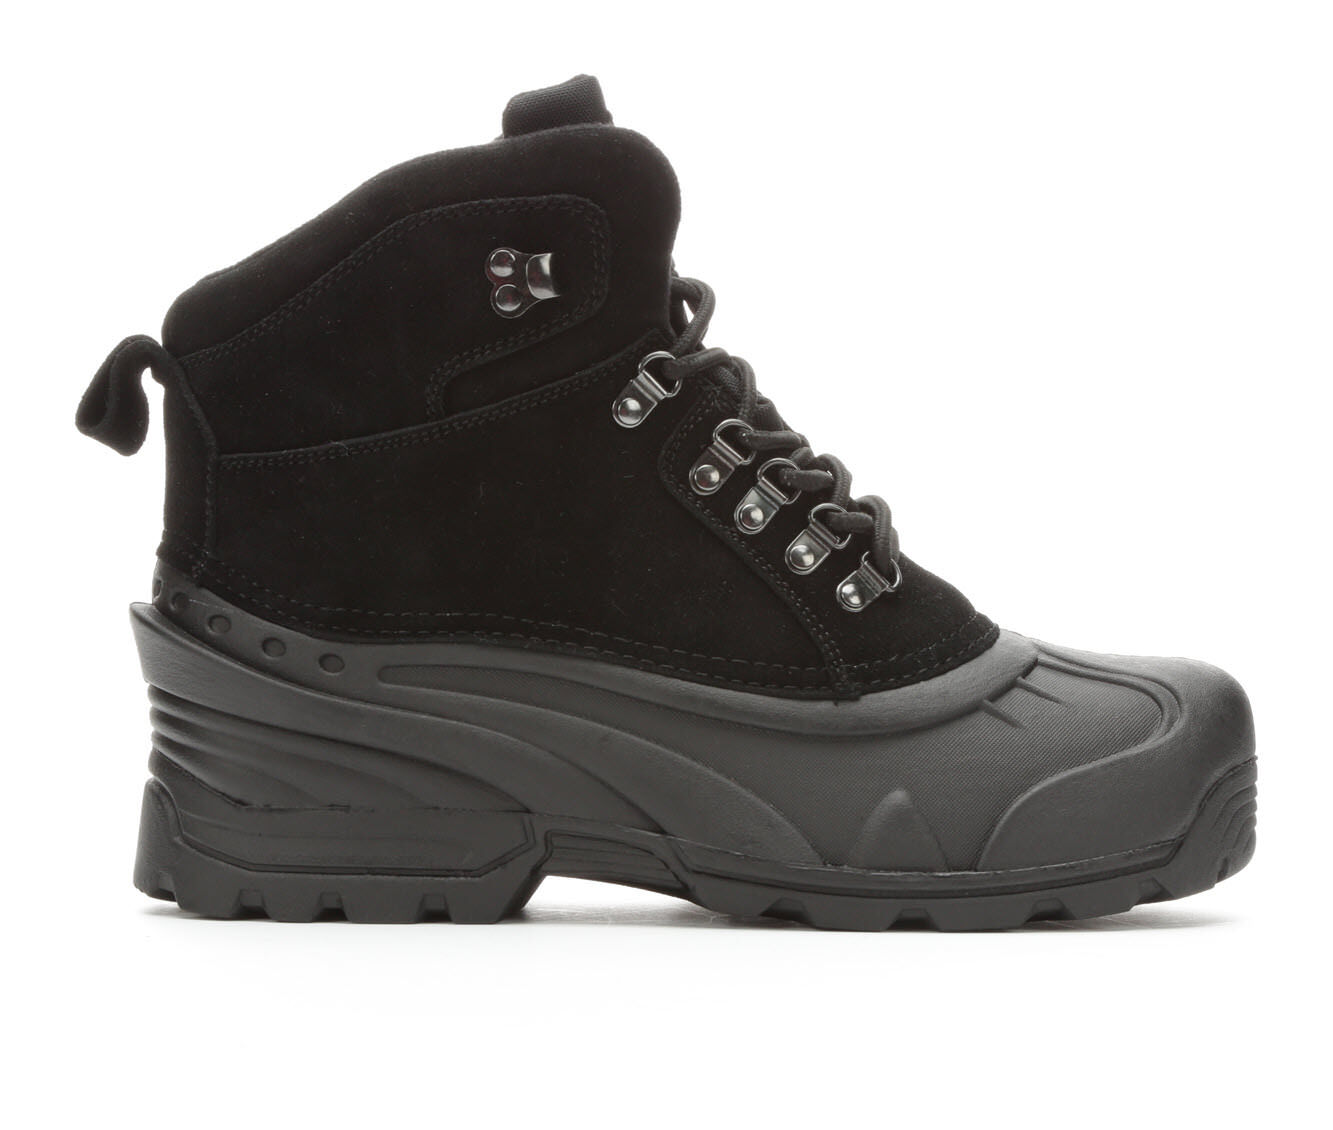 Men's Itasca Sonoma Ice House II Winter Boots clearance eastbay cheap price cost cheap sale good selling footlocker cheap price gITbS